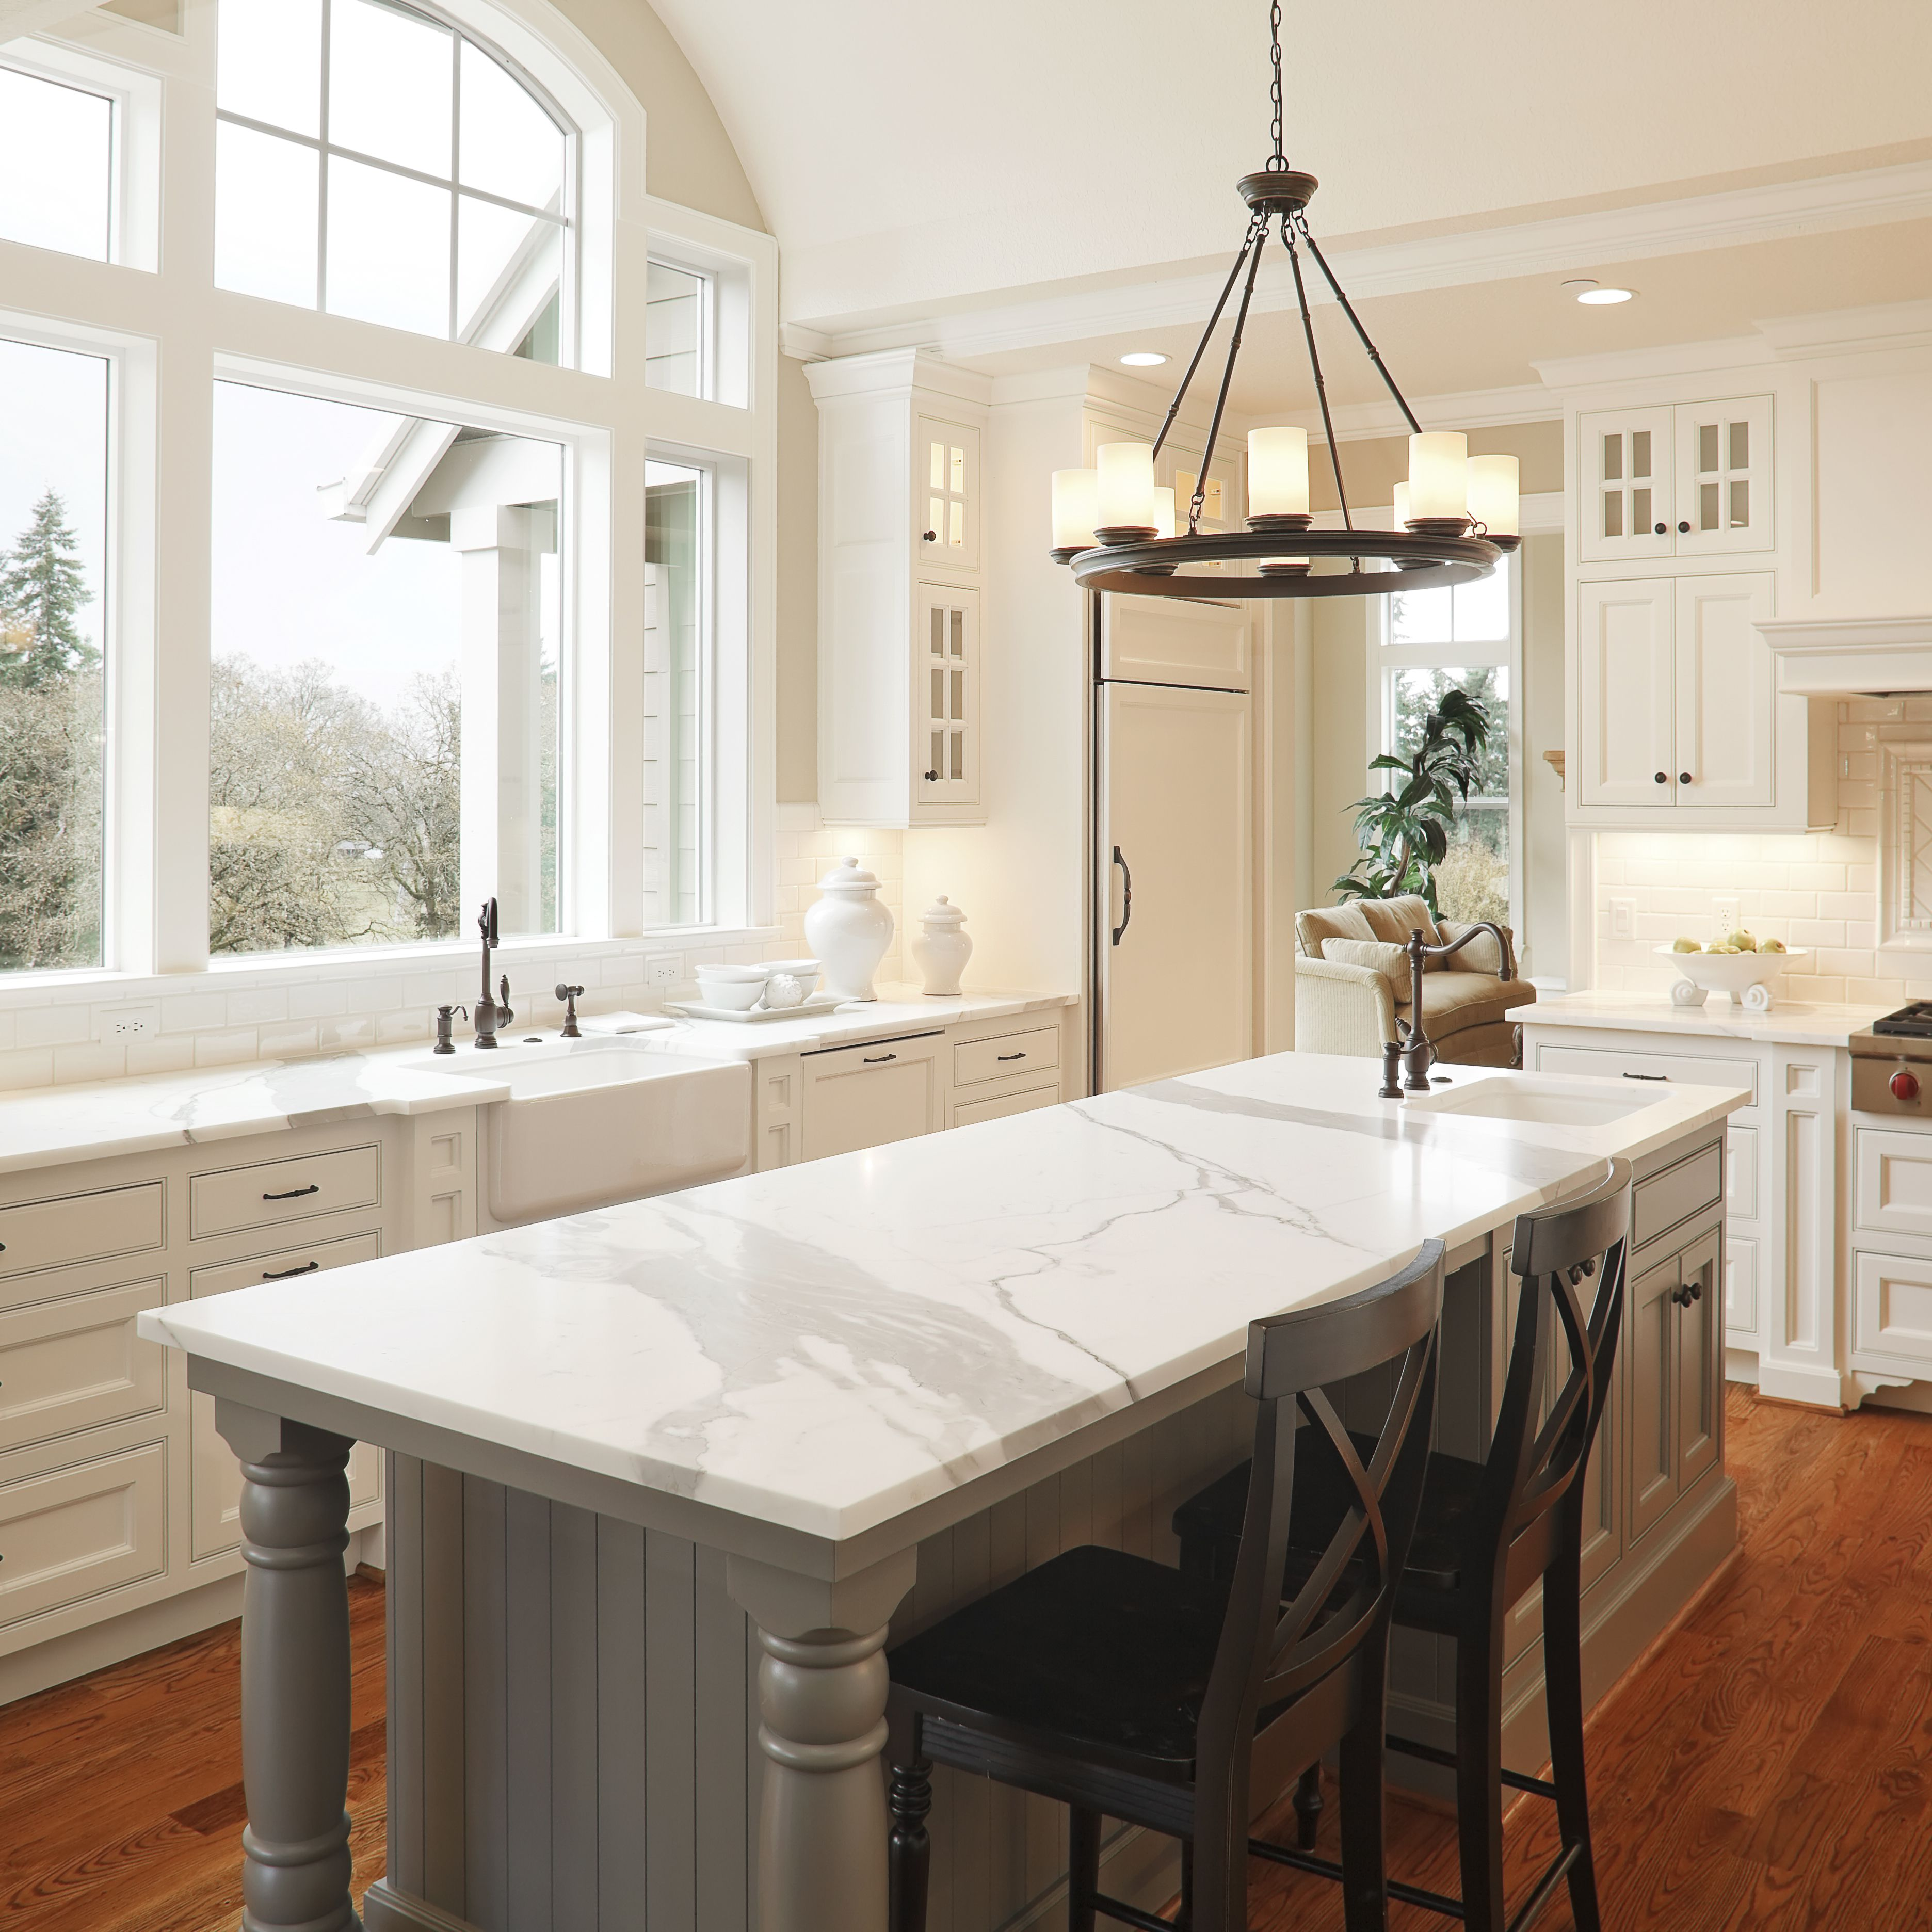 decorative kitchen decor.htm get top price for your home by decorating it to sell  decorating it to sell